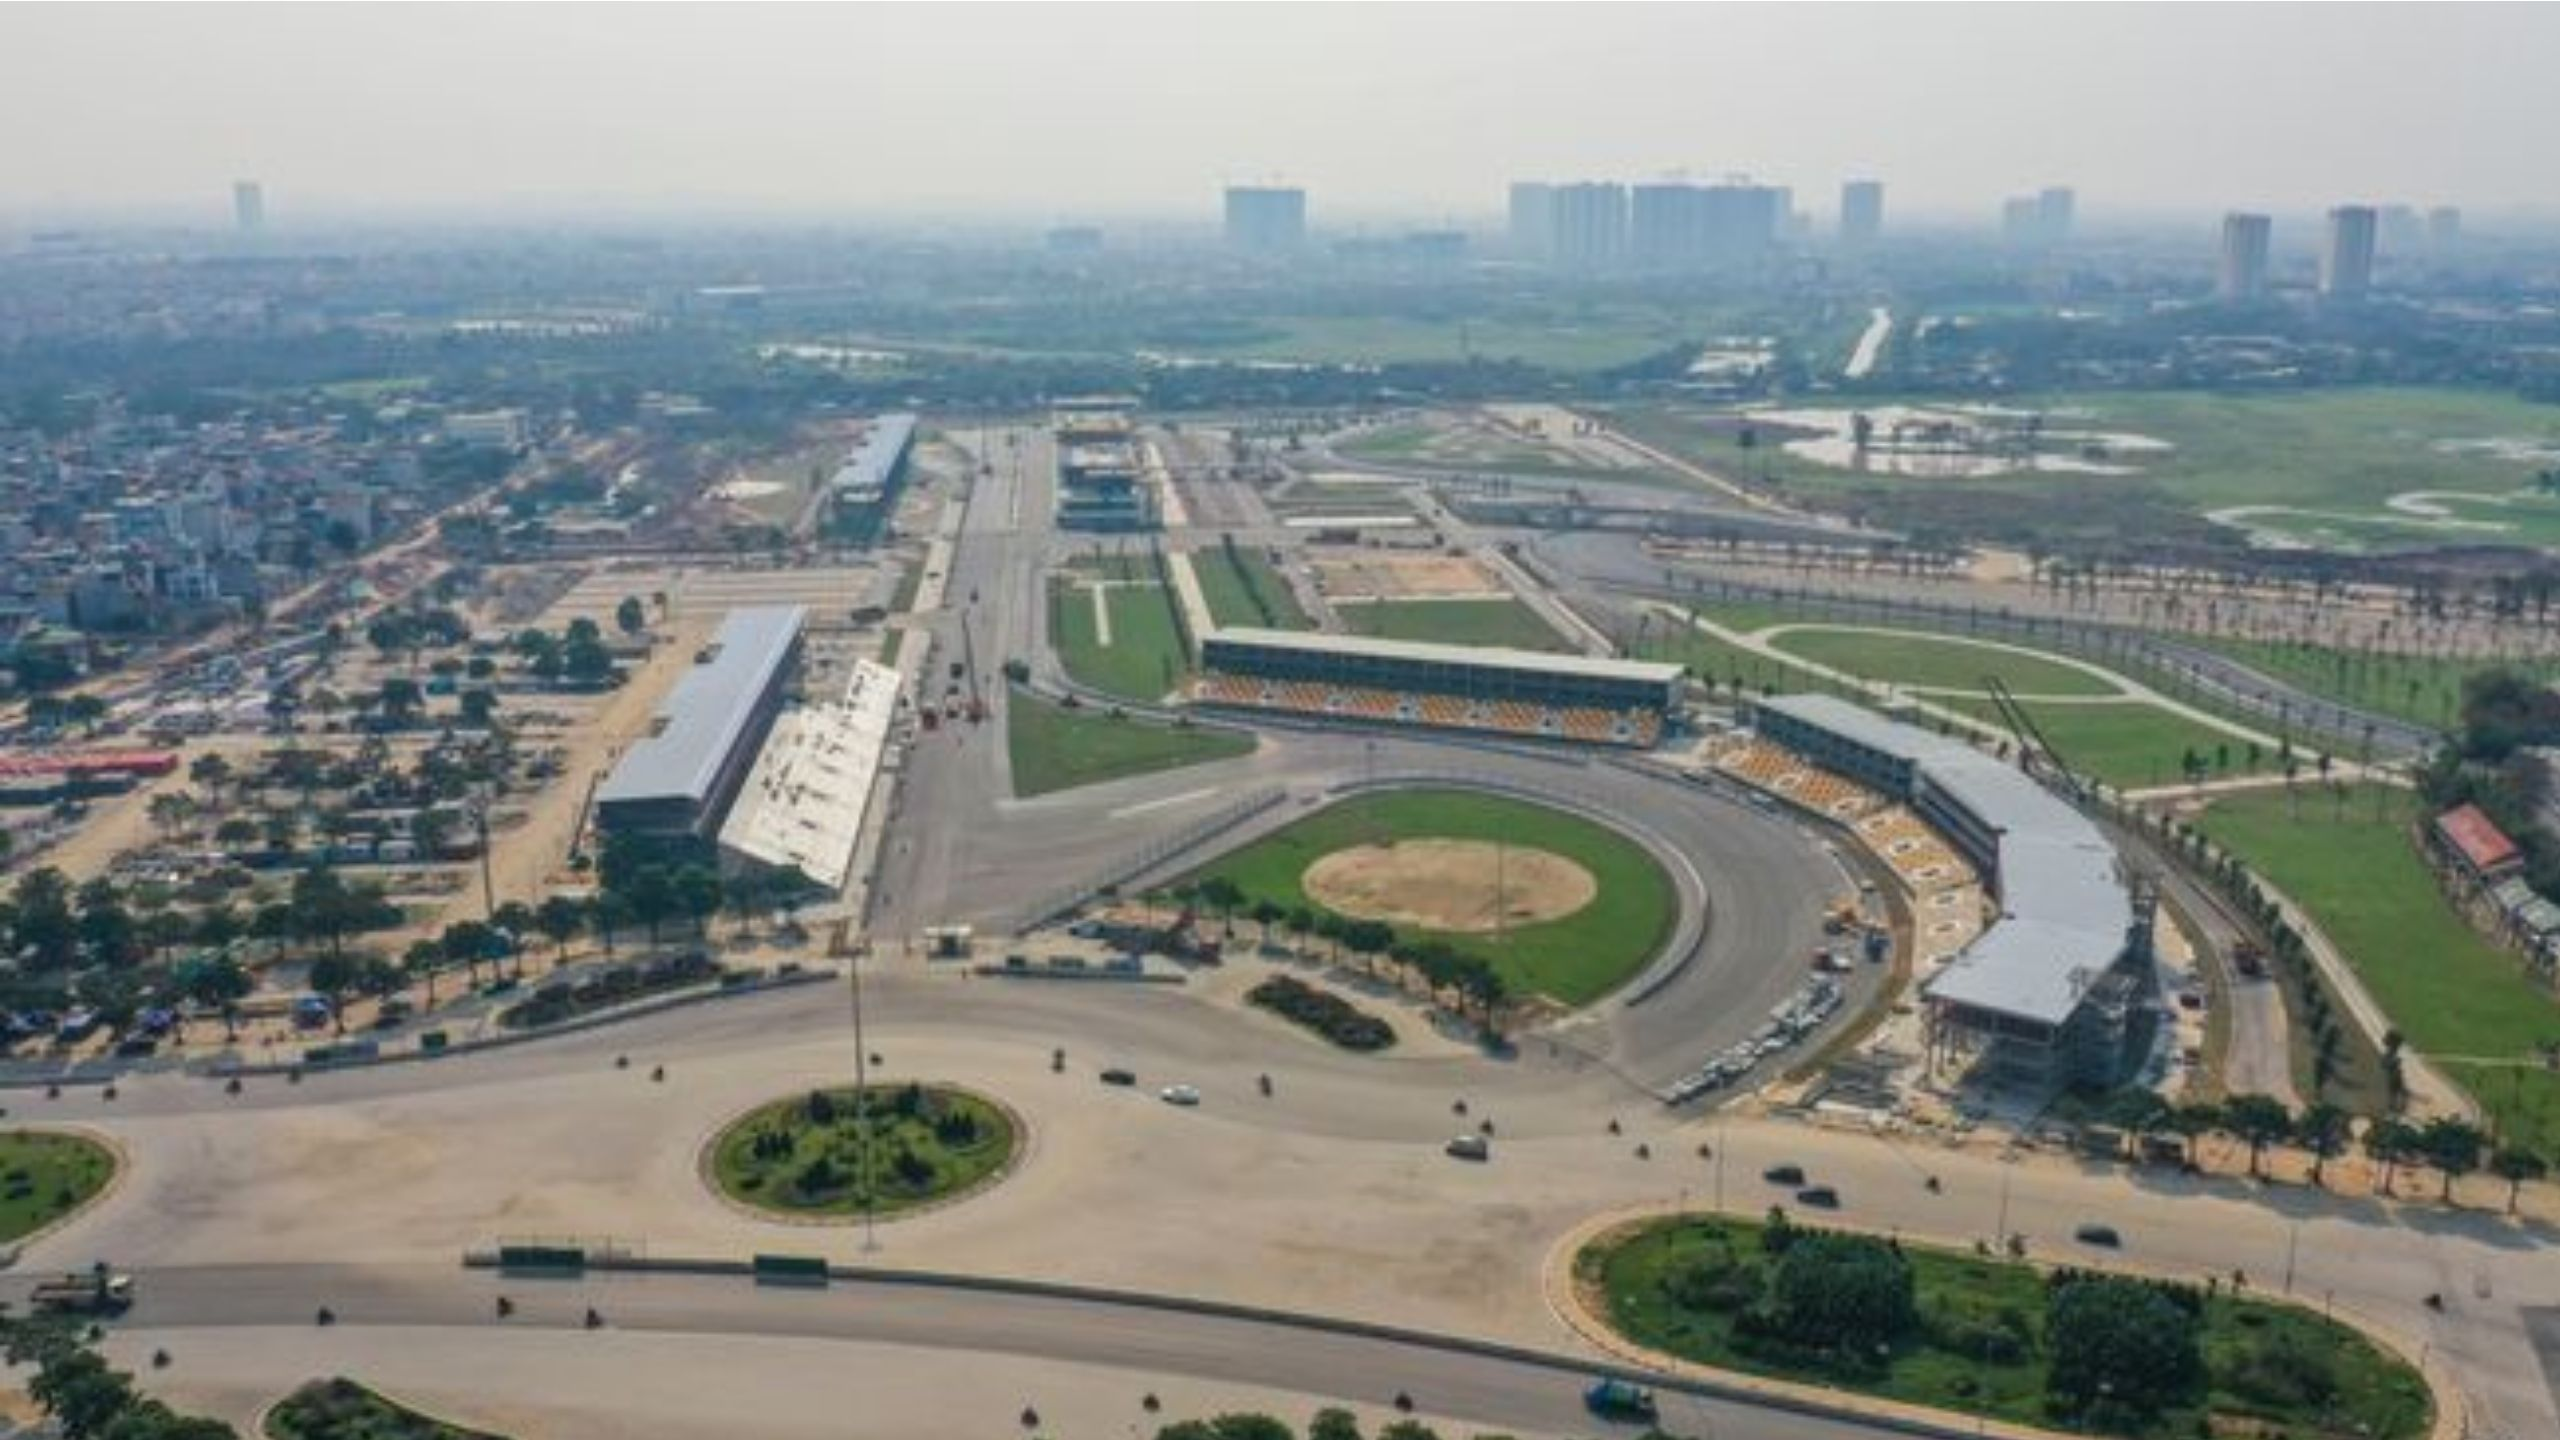 F1 2021 Calendar: Vietnam Grand Prix at Hanoi called off; Istanbul, Imola, or Portimao could replace it